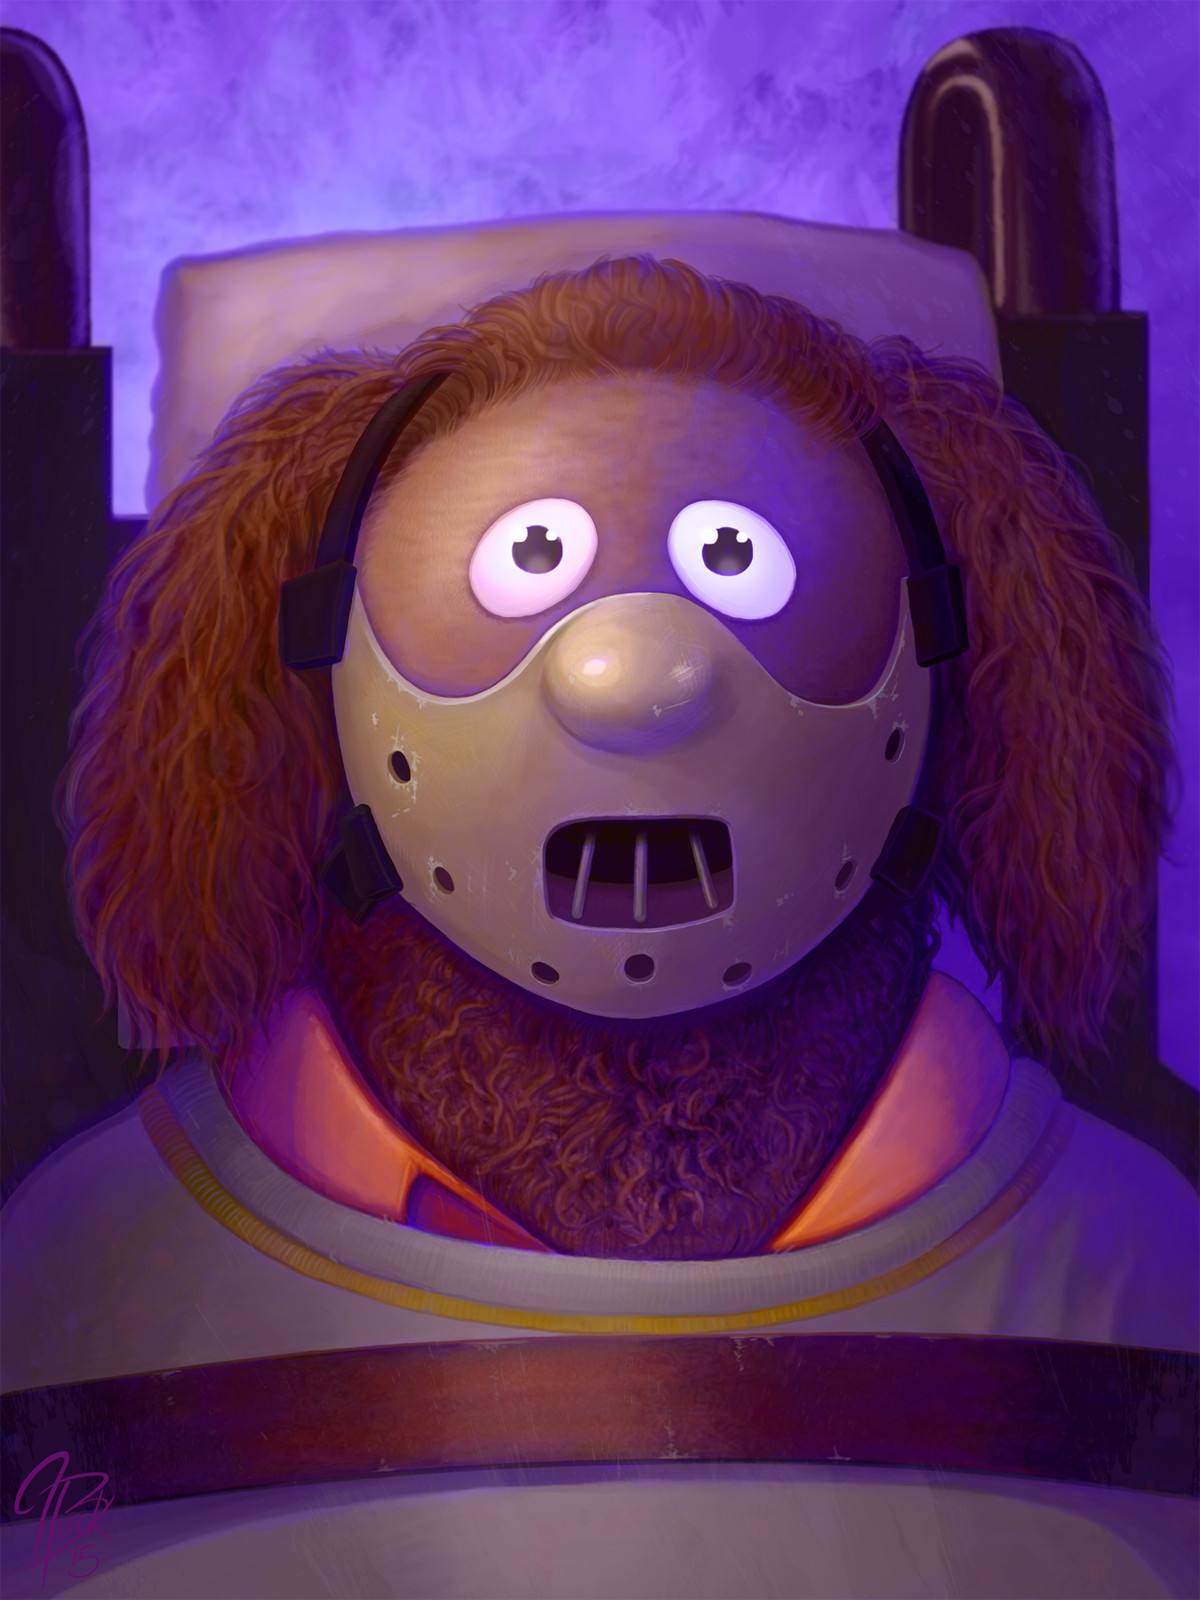 Rowlf as Hannibal Lecter